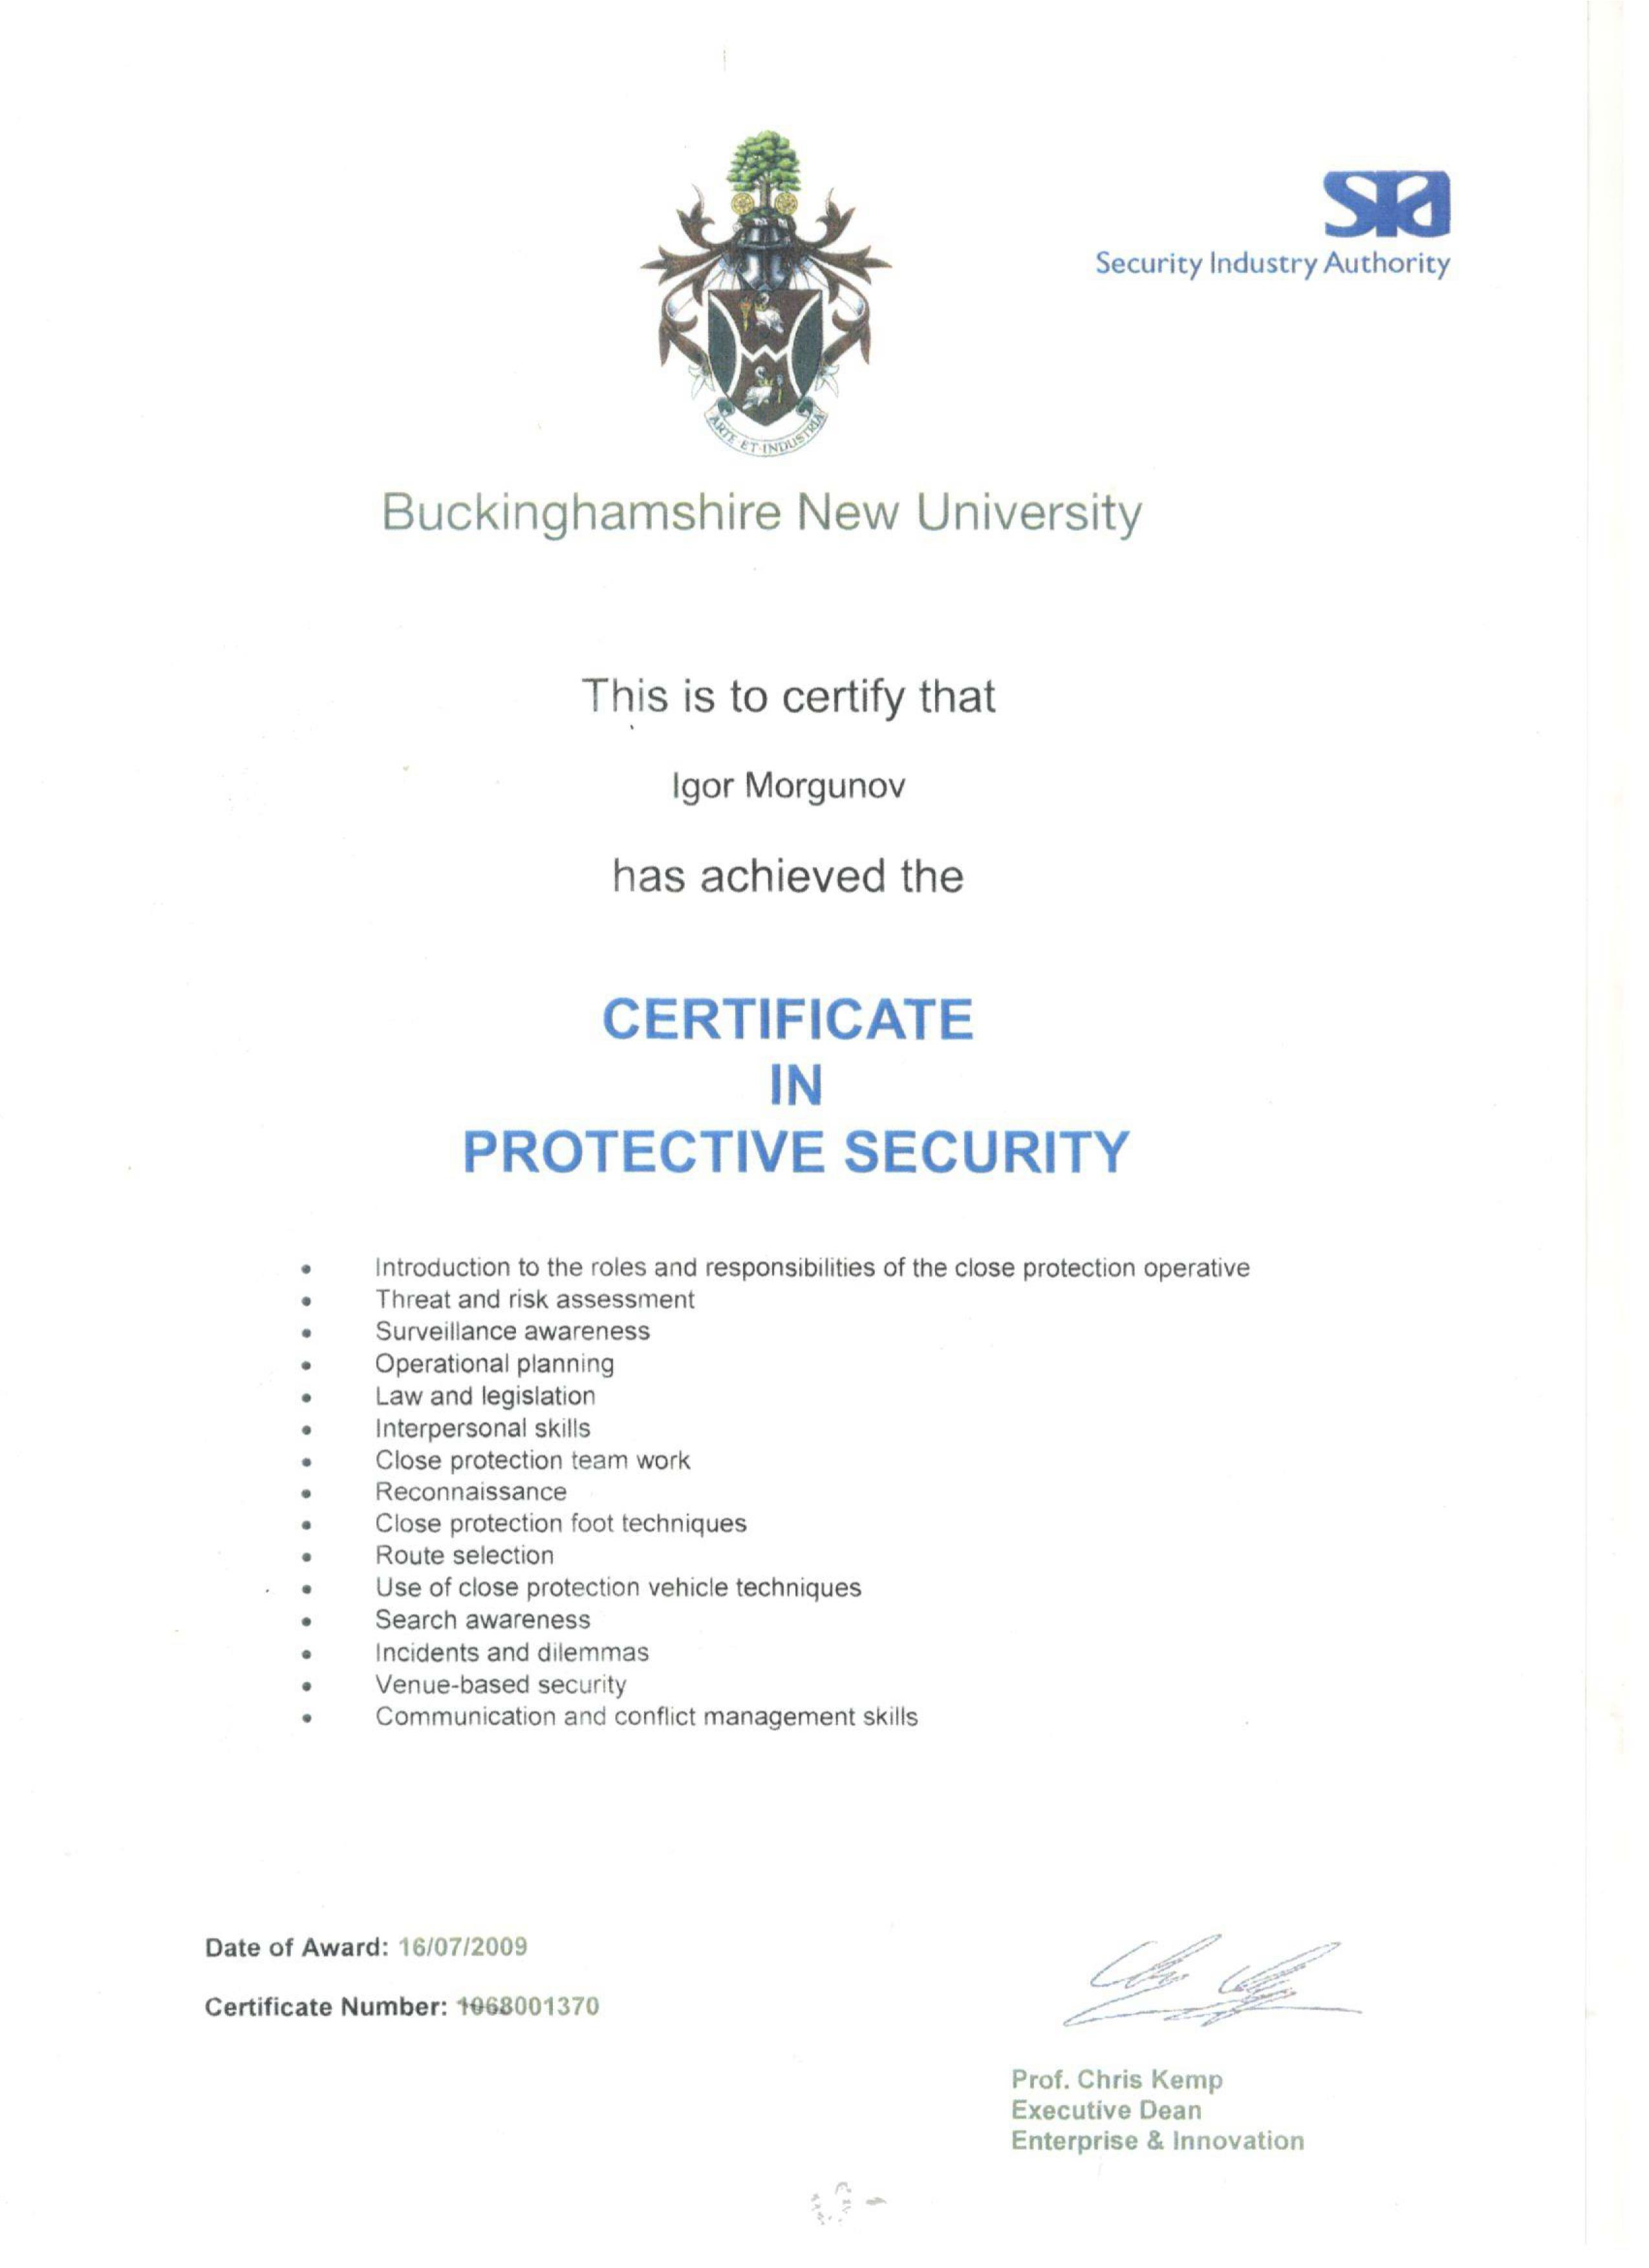 Certificate in Protection Security Igor Morgunov 16/07/2009